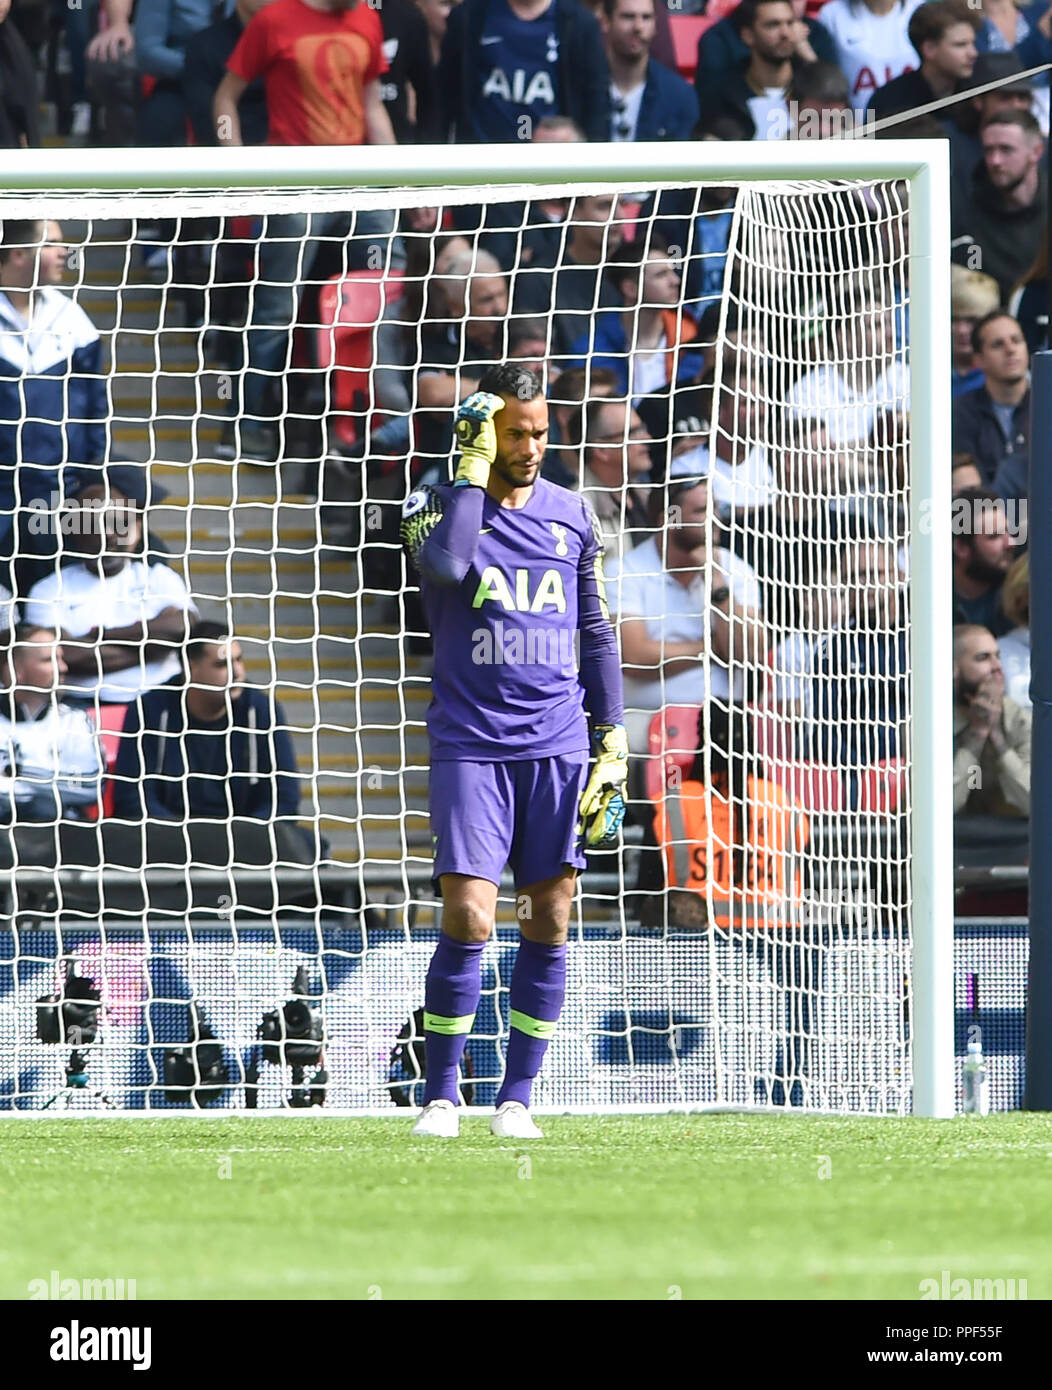 Michel Vorm of Spurs scathes his head after conceding the second goal during the Premier League match between Tottenham Hotspur and Liverpool at Wembley Stadium , London , 15 Sept 2018 Editorial use only. No merchandising. For Football images FA and Premier League restrictions apply inc. no internet/mobile usage without FAPL license - for details contact Football Dataco - Stock Image